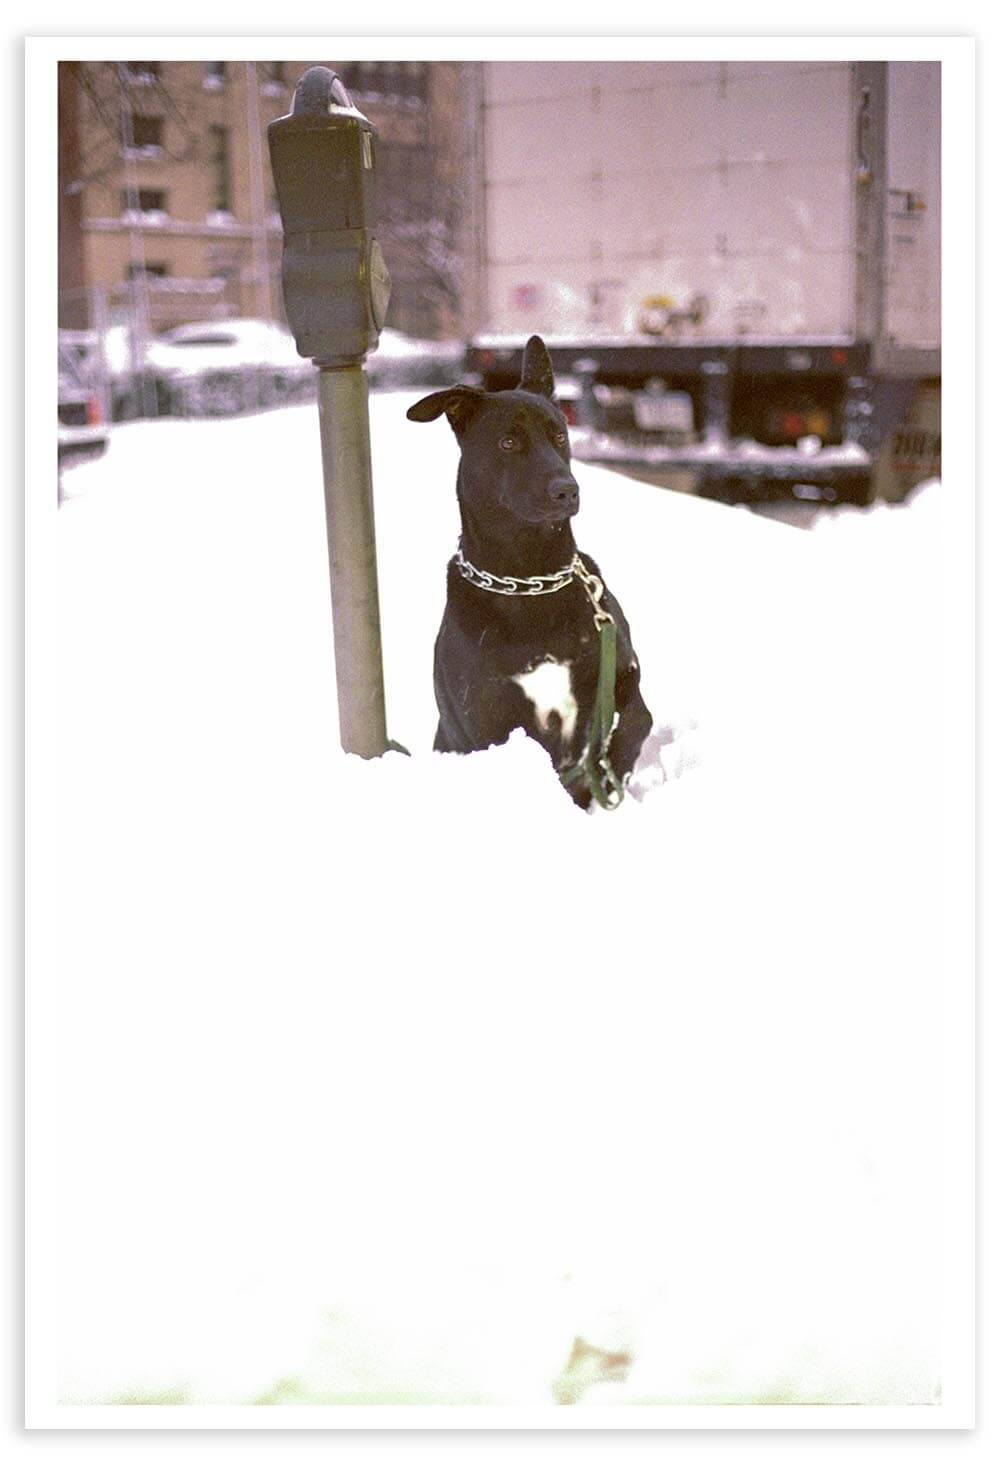 Photographed after the February 2006 New York City Blizzard. This dog looked like he was left outside all night, but his master was only gone for a minute or two.